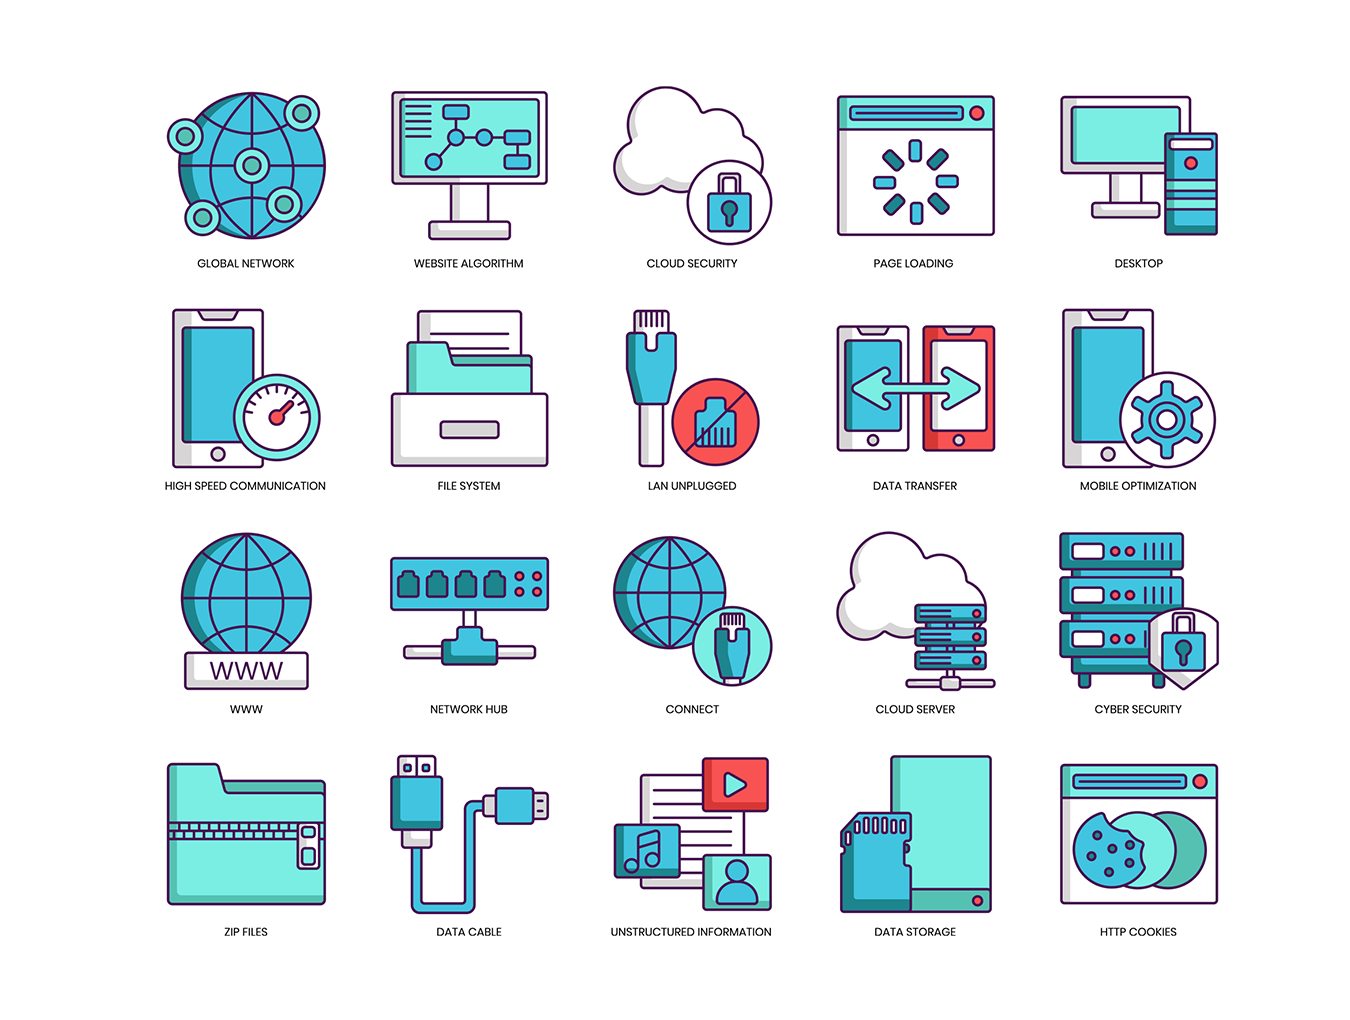 web_hosting_icons_ui8_detail_image_6_1540817413249.png